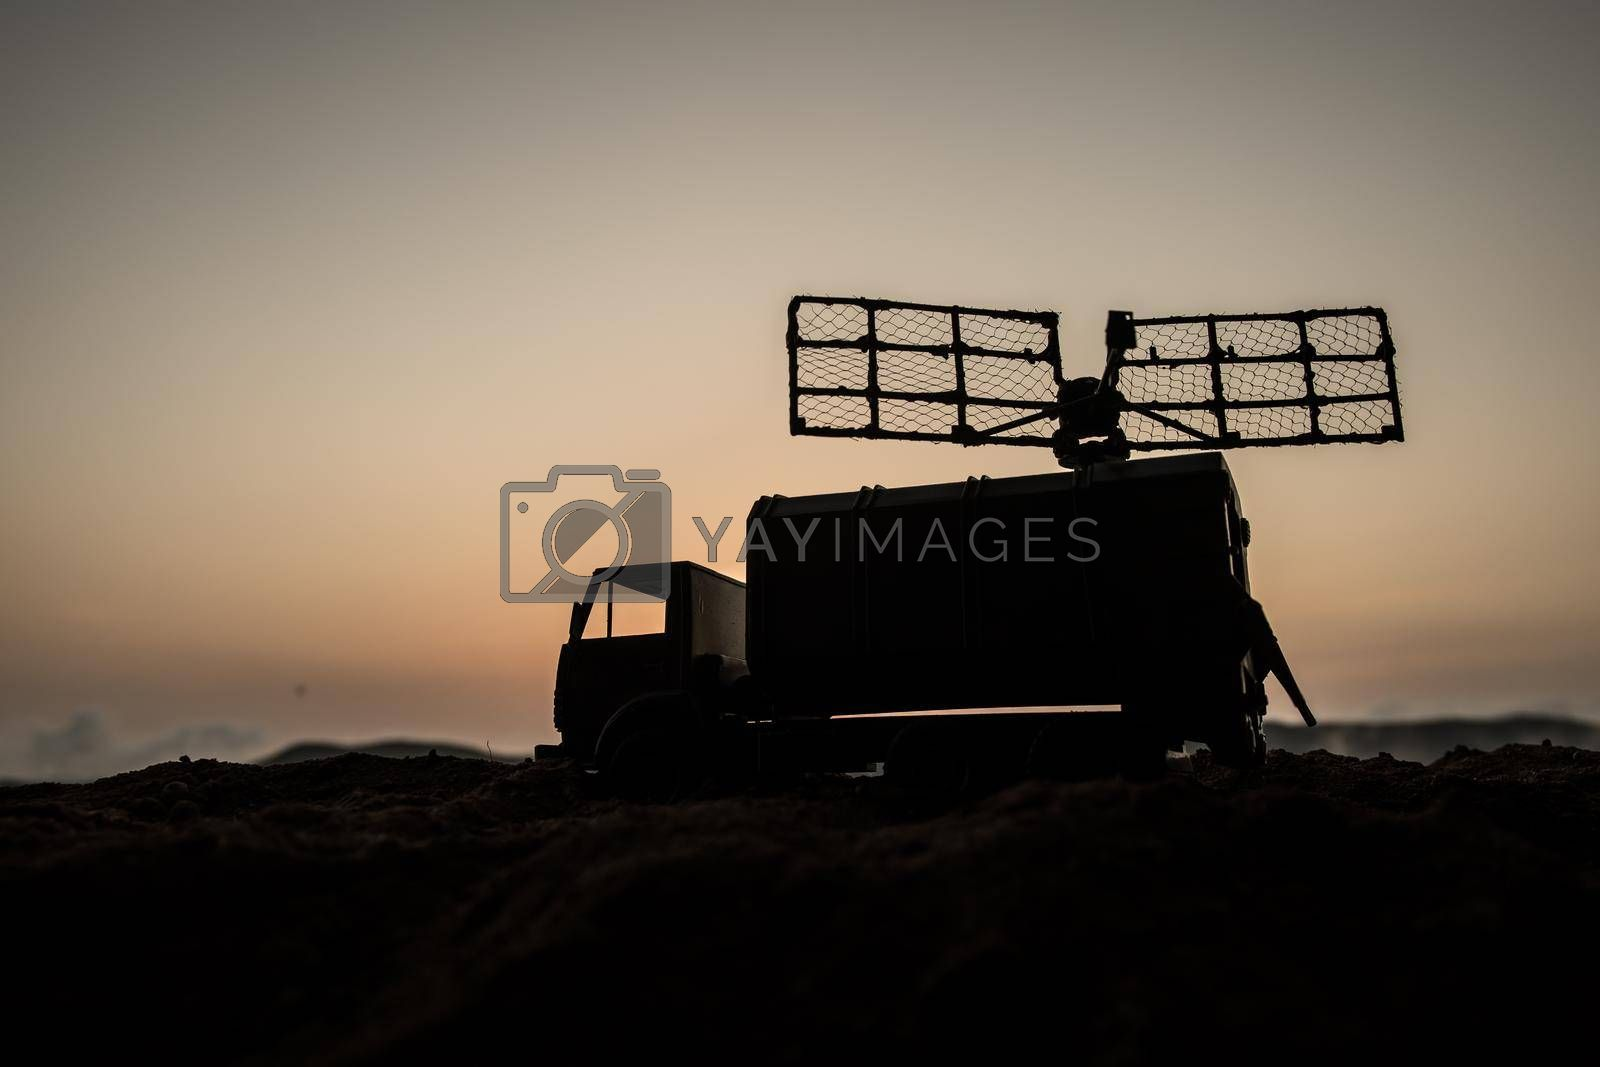 Royalty free image of Creative artwork decoration. Silhouette of mobile air defence truck with radar antenna during sunset. Satellite dishes or radio antennas against evening sky. by Zeferli